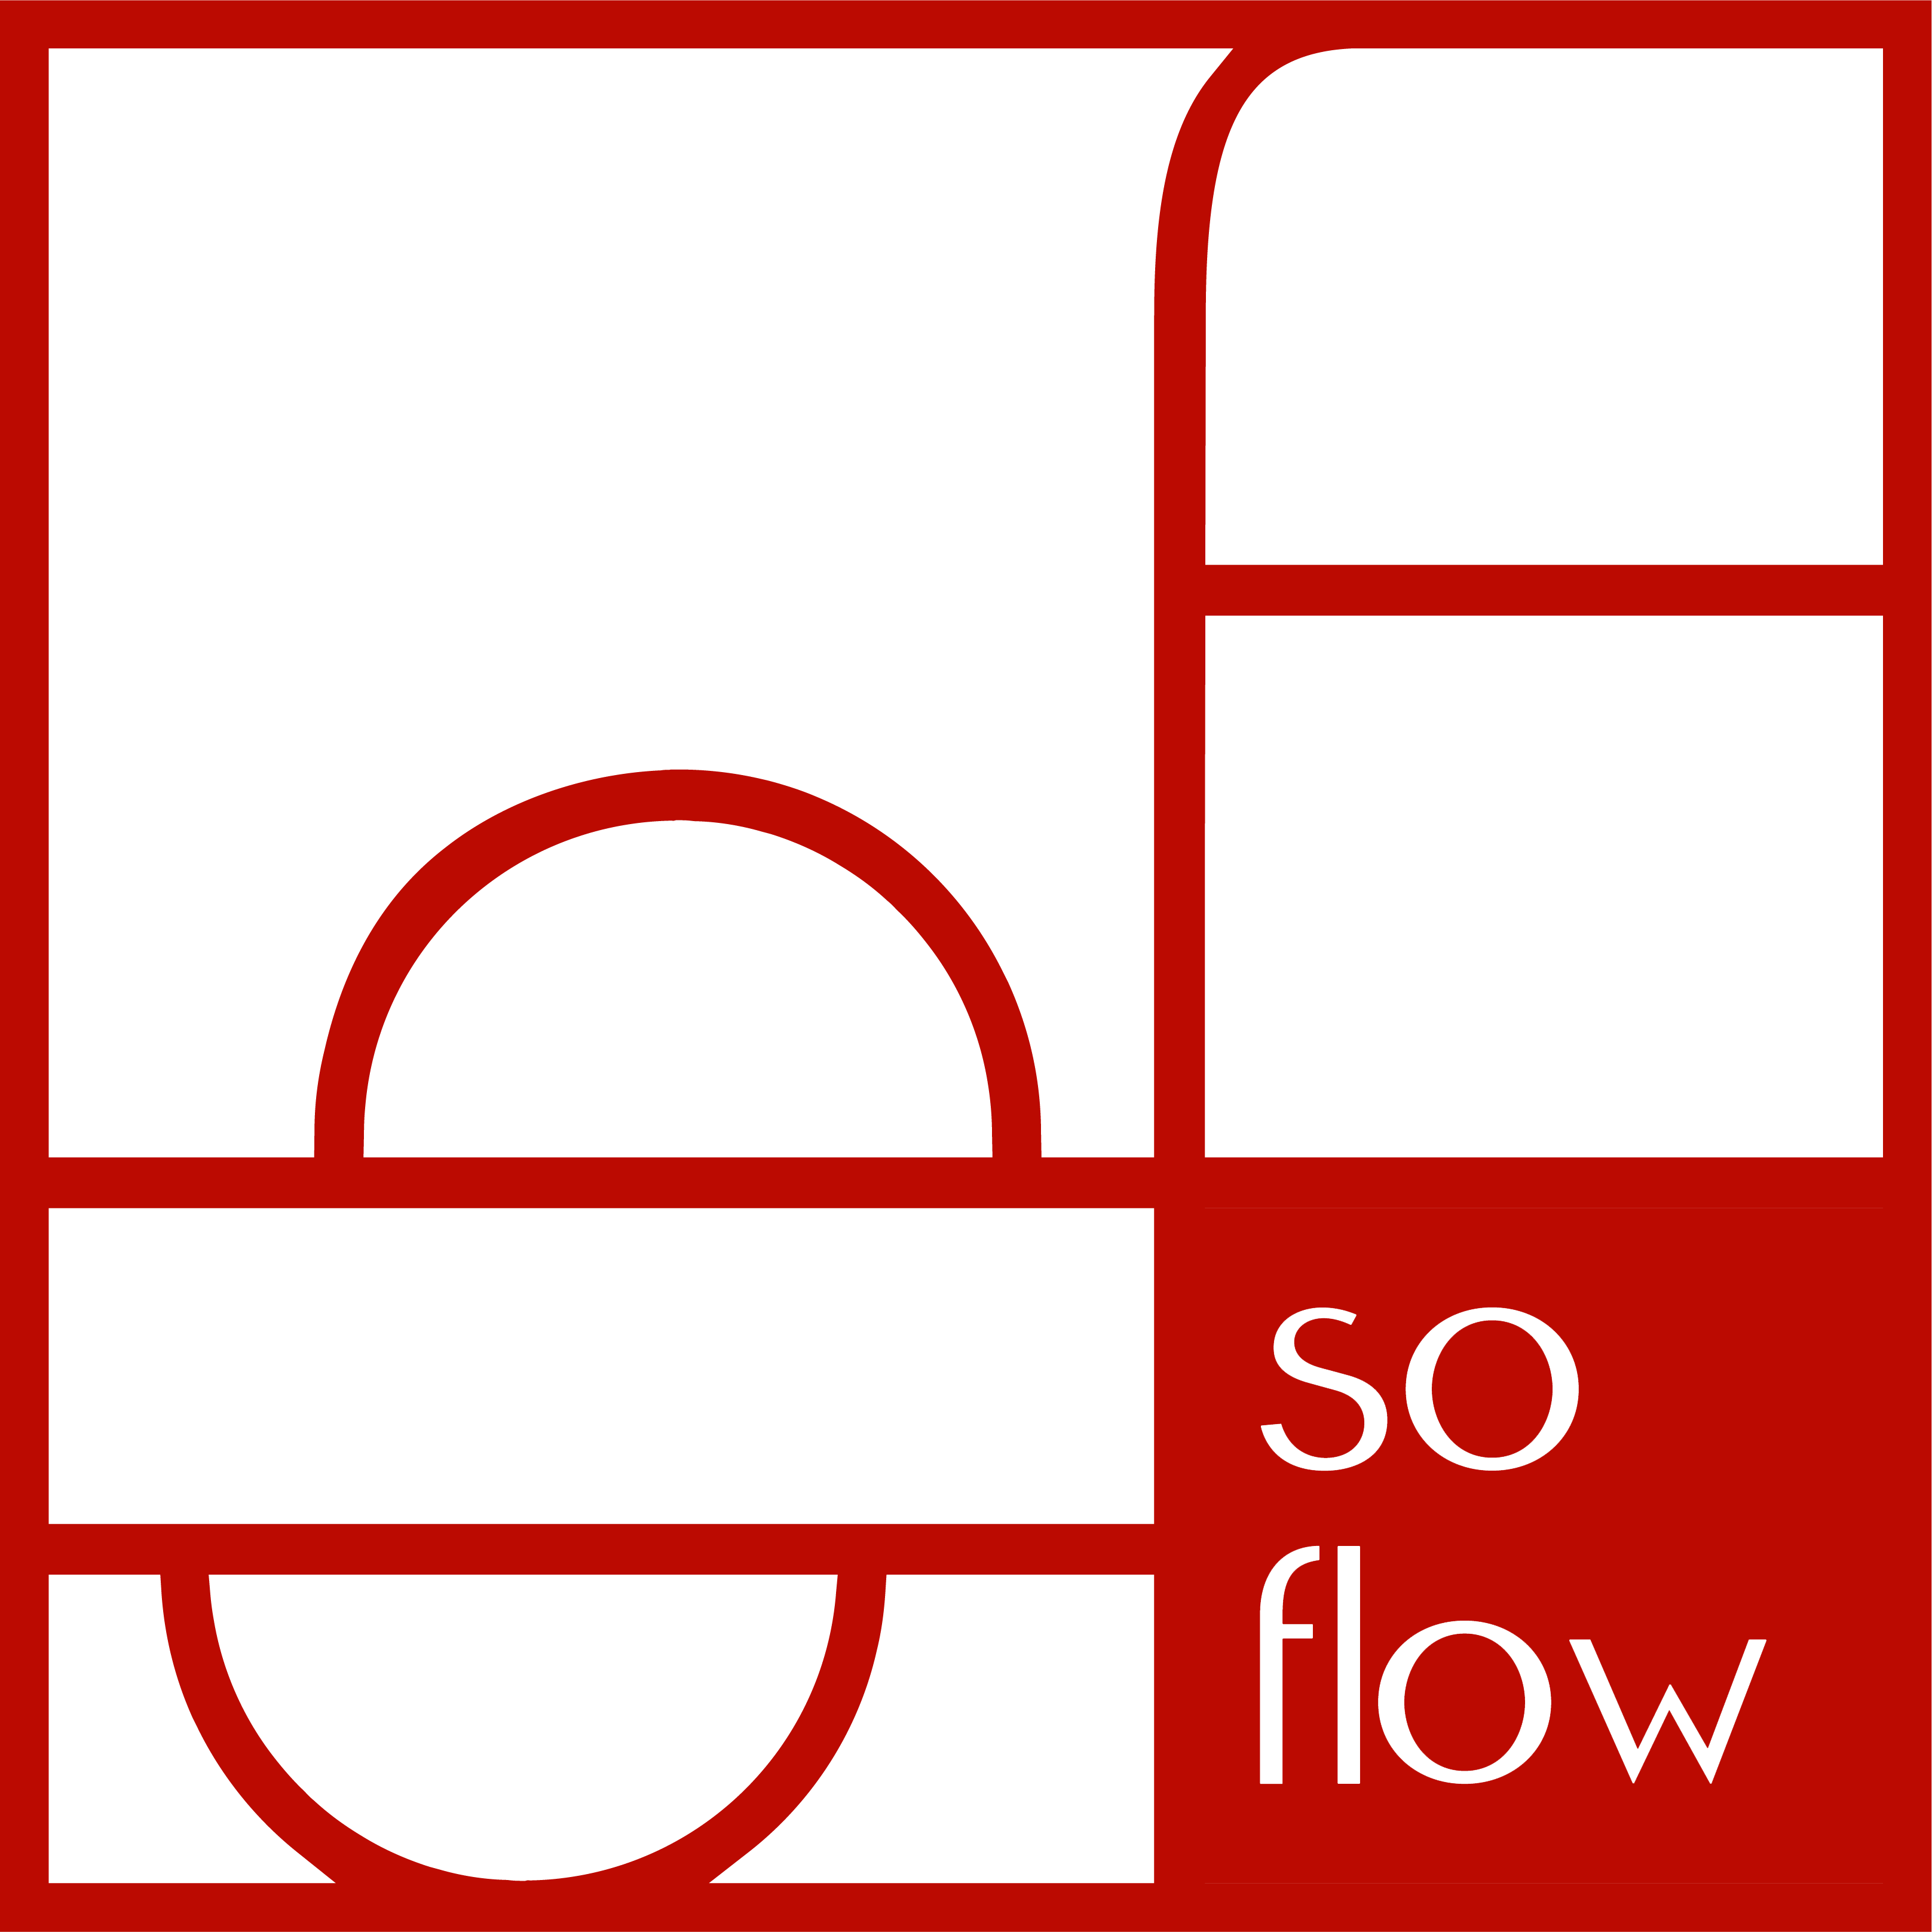 logo of soflow, job coach and professional organizer in red